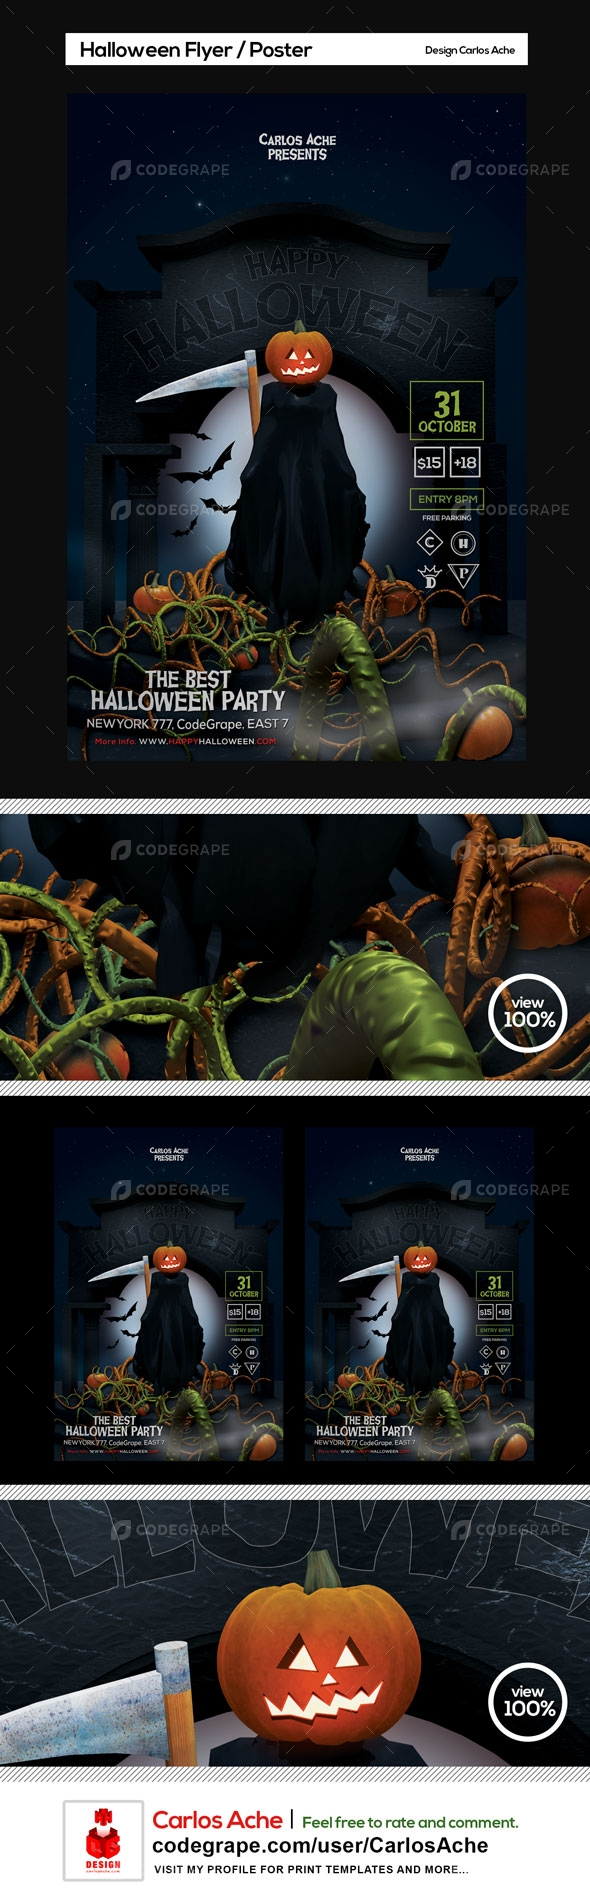 Halloween Flyer and Poster Template